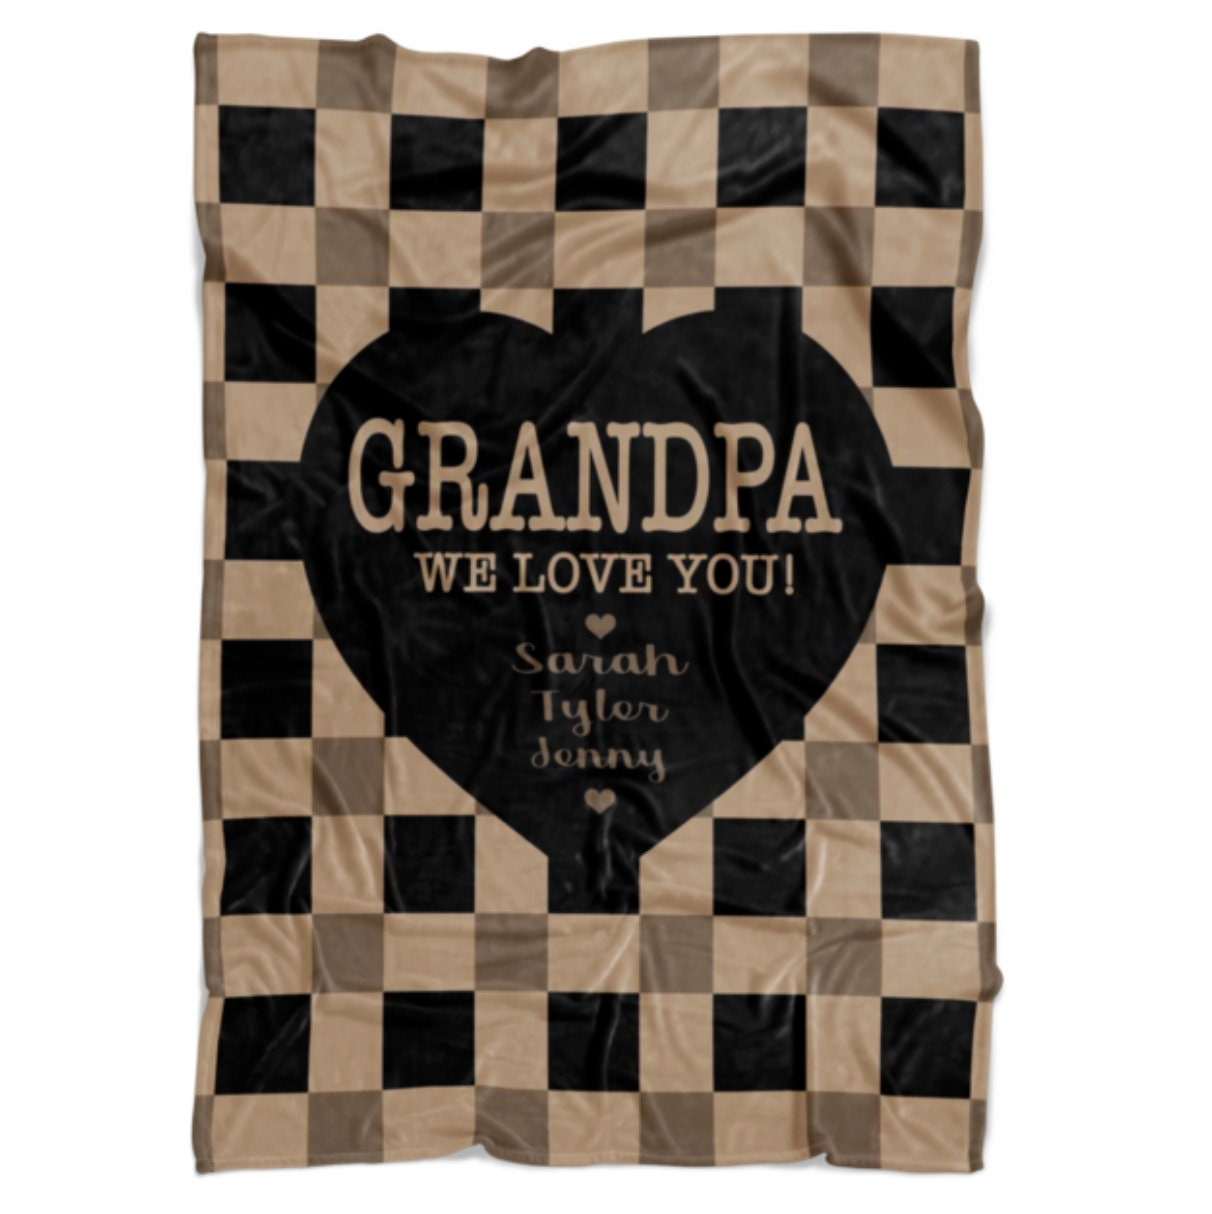 Grandpa Blanket Personalized Grandparent Gifts Christmas Gift For Grandpa Gift From Grandkids Grandfather Gift For Man Who Has Everything